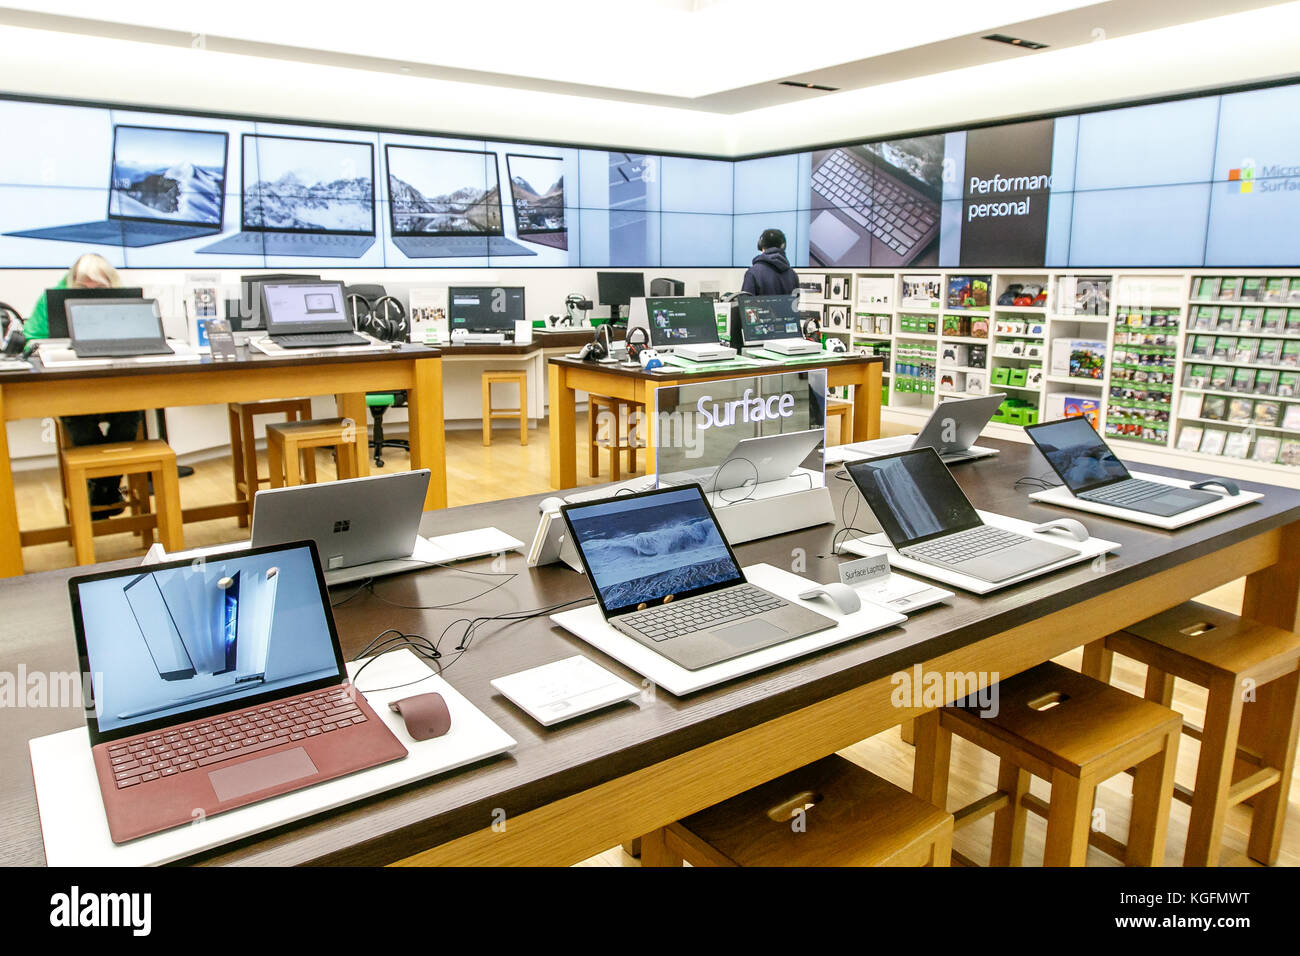 Building 92 microsoft store - Variety Of Laptops Running Windows Surface For Sale At A Microsoft Store In Prudential Center In